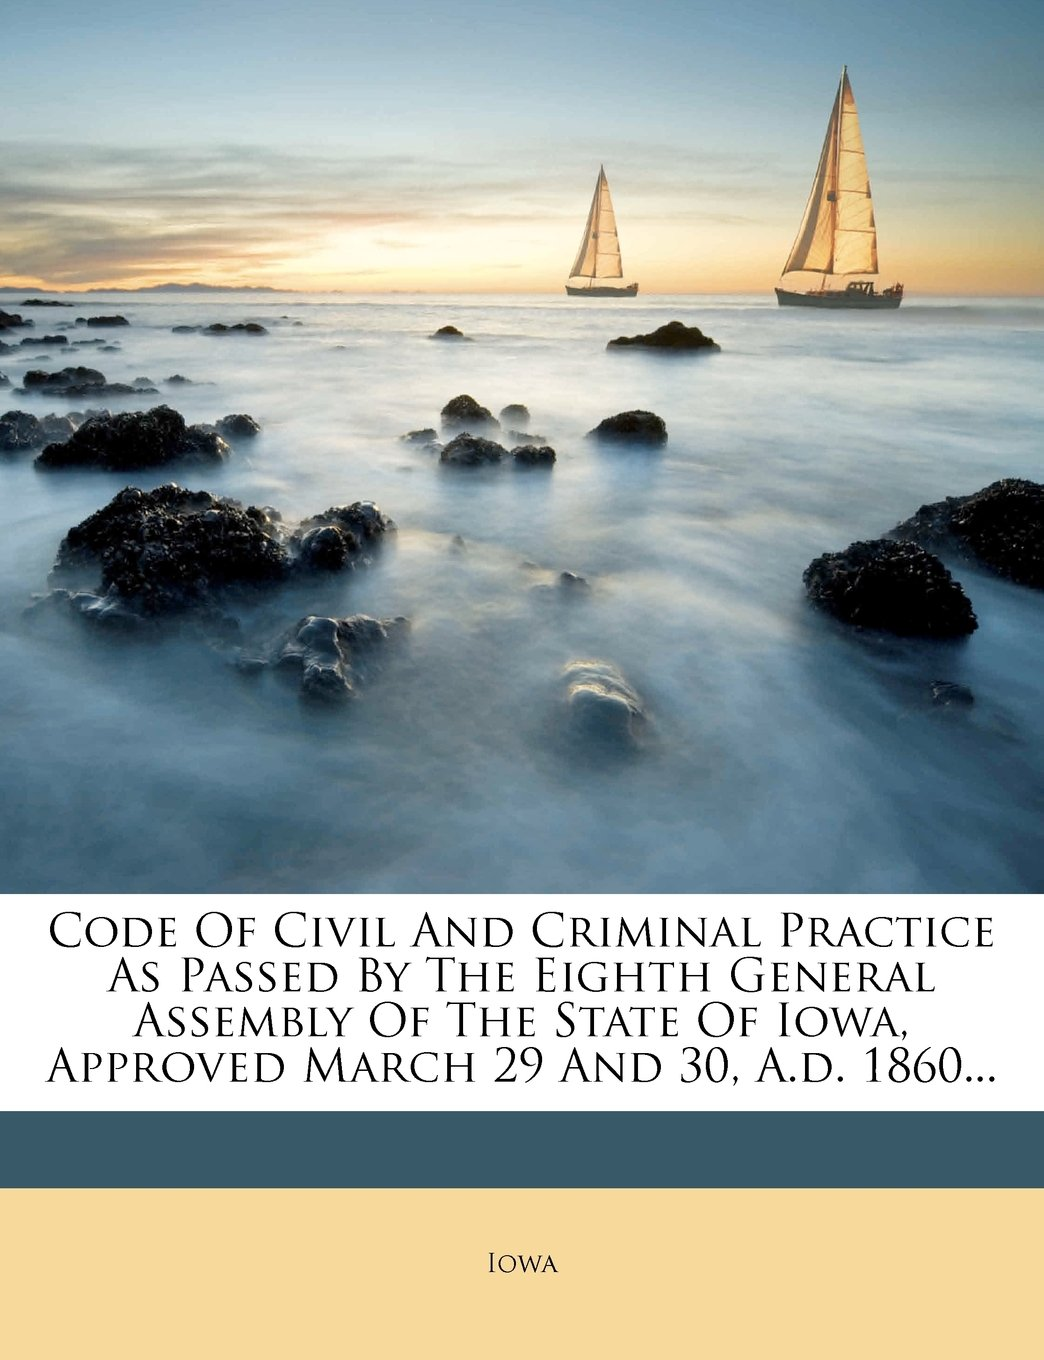 Download Code Of Civil And Criminal Practice As Passed By The Eighth General Assembly Of The State Of Iowa, Approved March 29 And 30, A.d. 1860... pdf epub